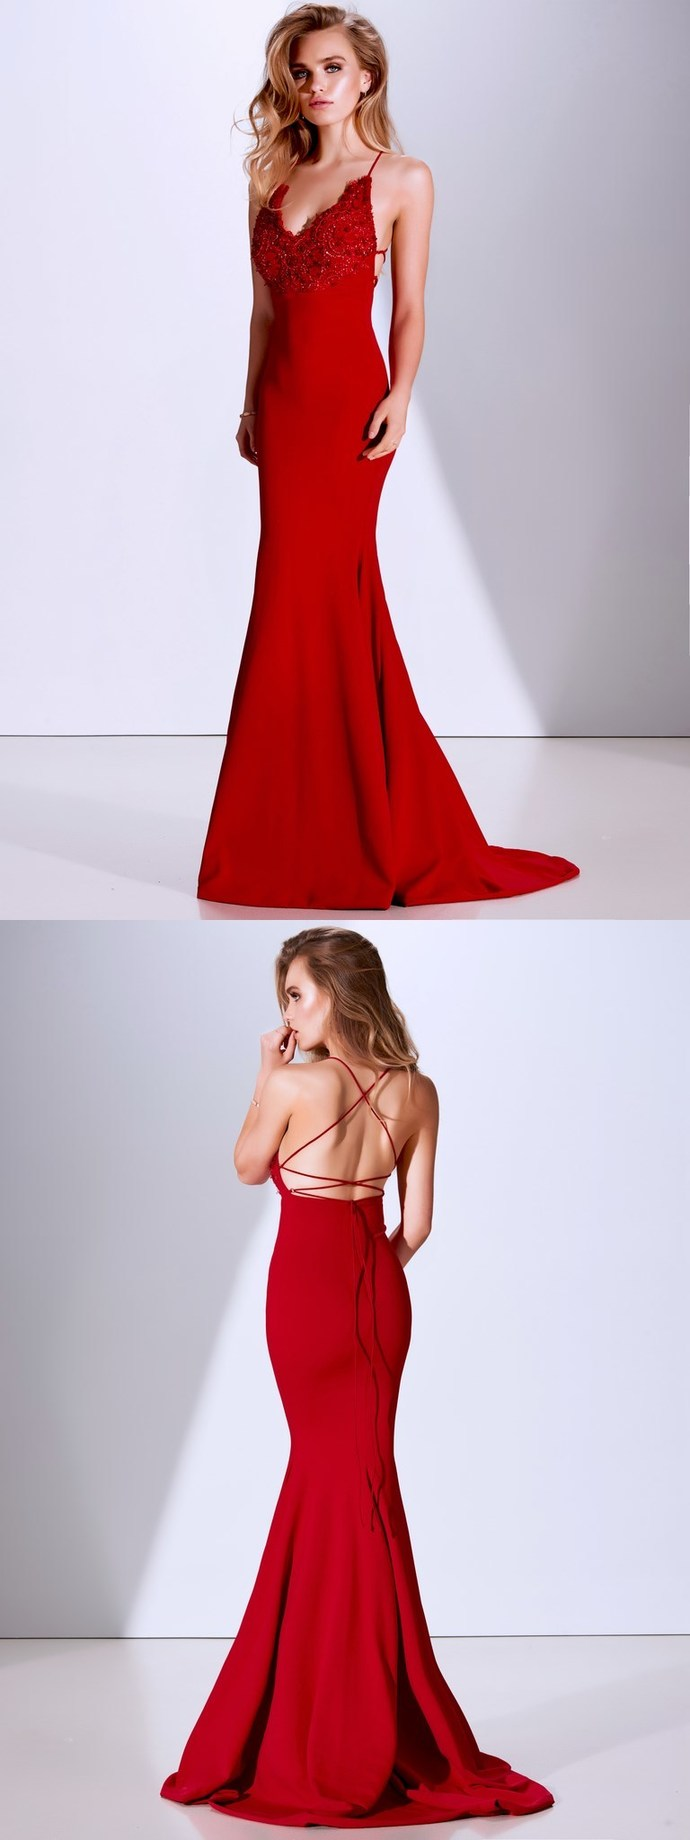 Sexy Mermaid Prom Dress,V-neck Prom Dresses,Spaghetti Straps Lace Prom Dress